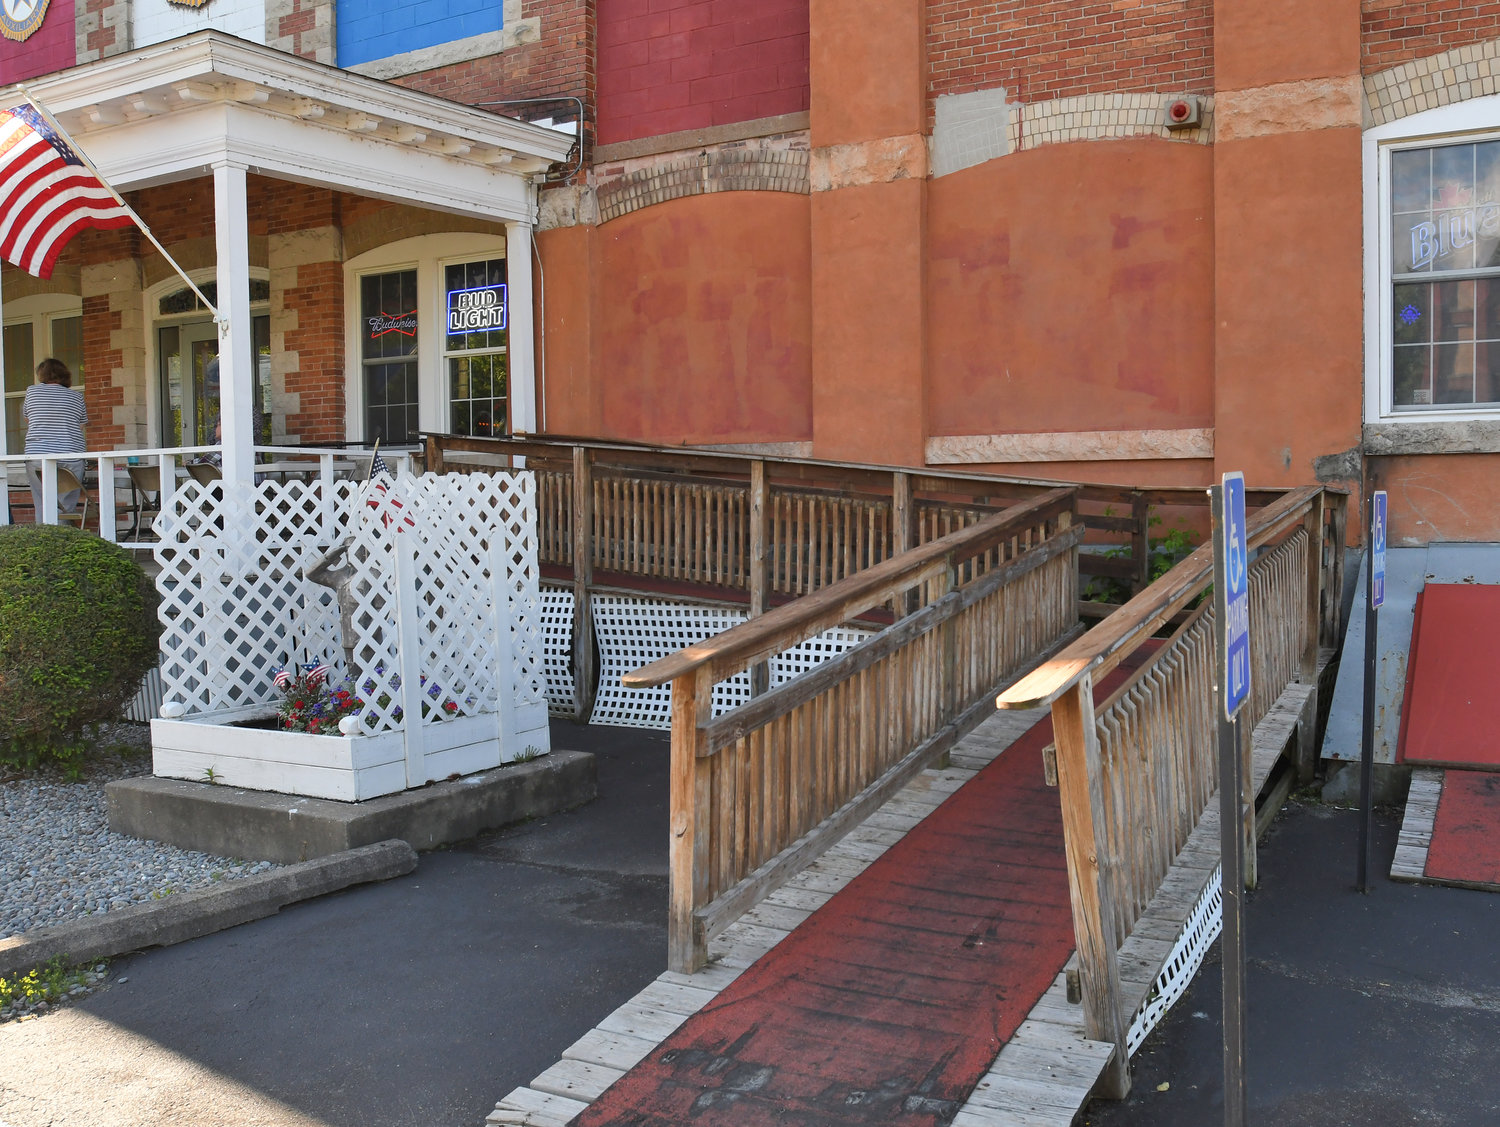 WORK TO BE DONE — Clark Mills American Legion Post 26 is currently raising funds to replace the handicap access ramps at both the front and rear of the historic building.